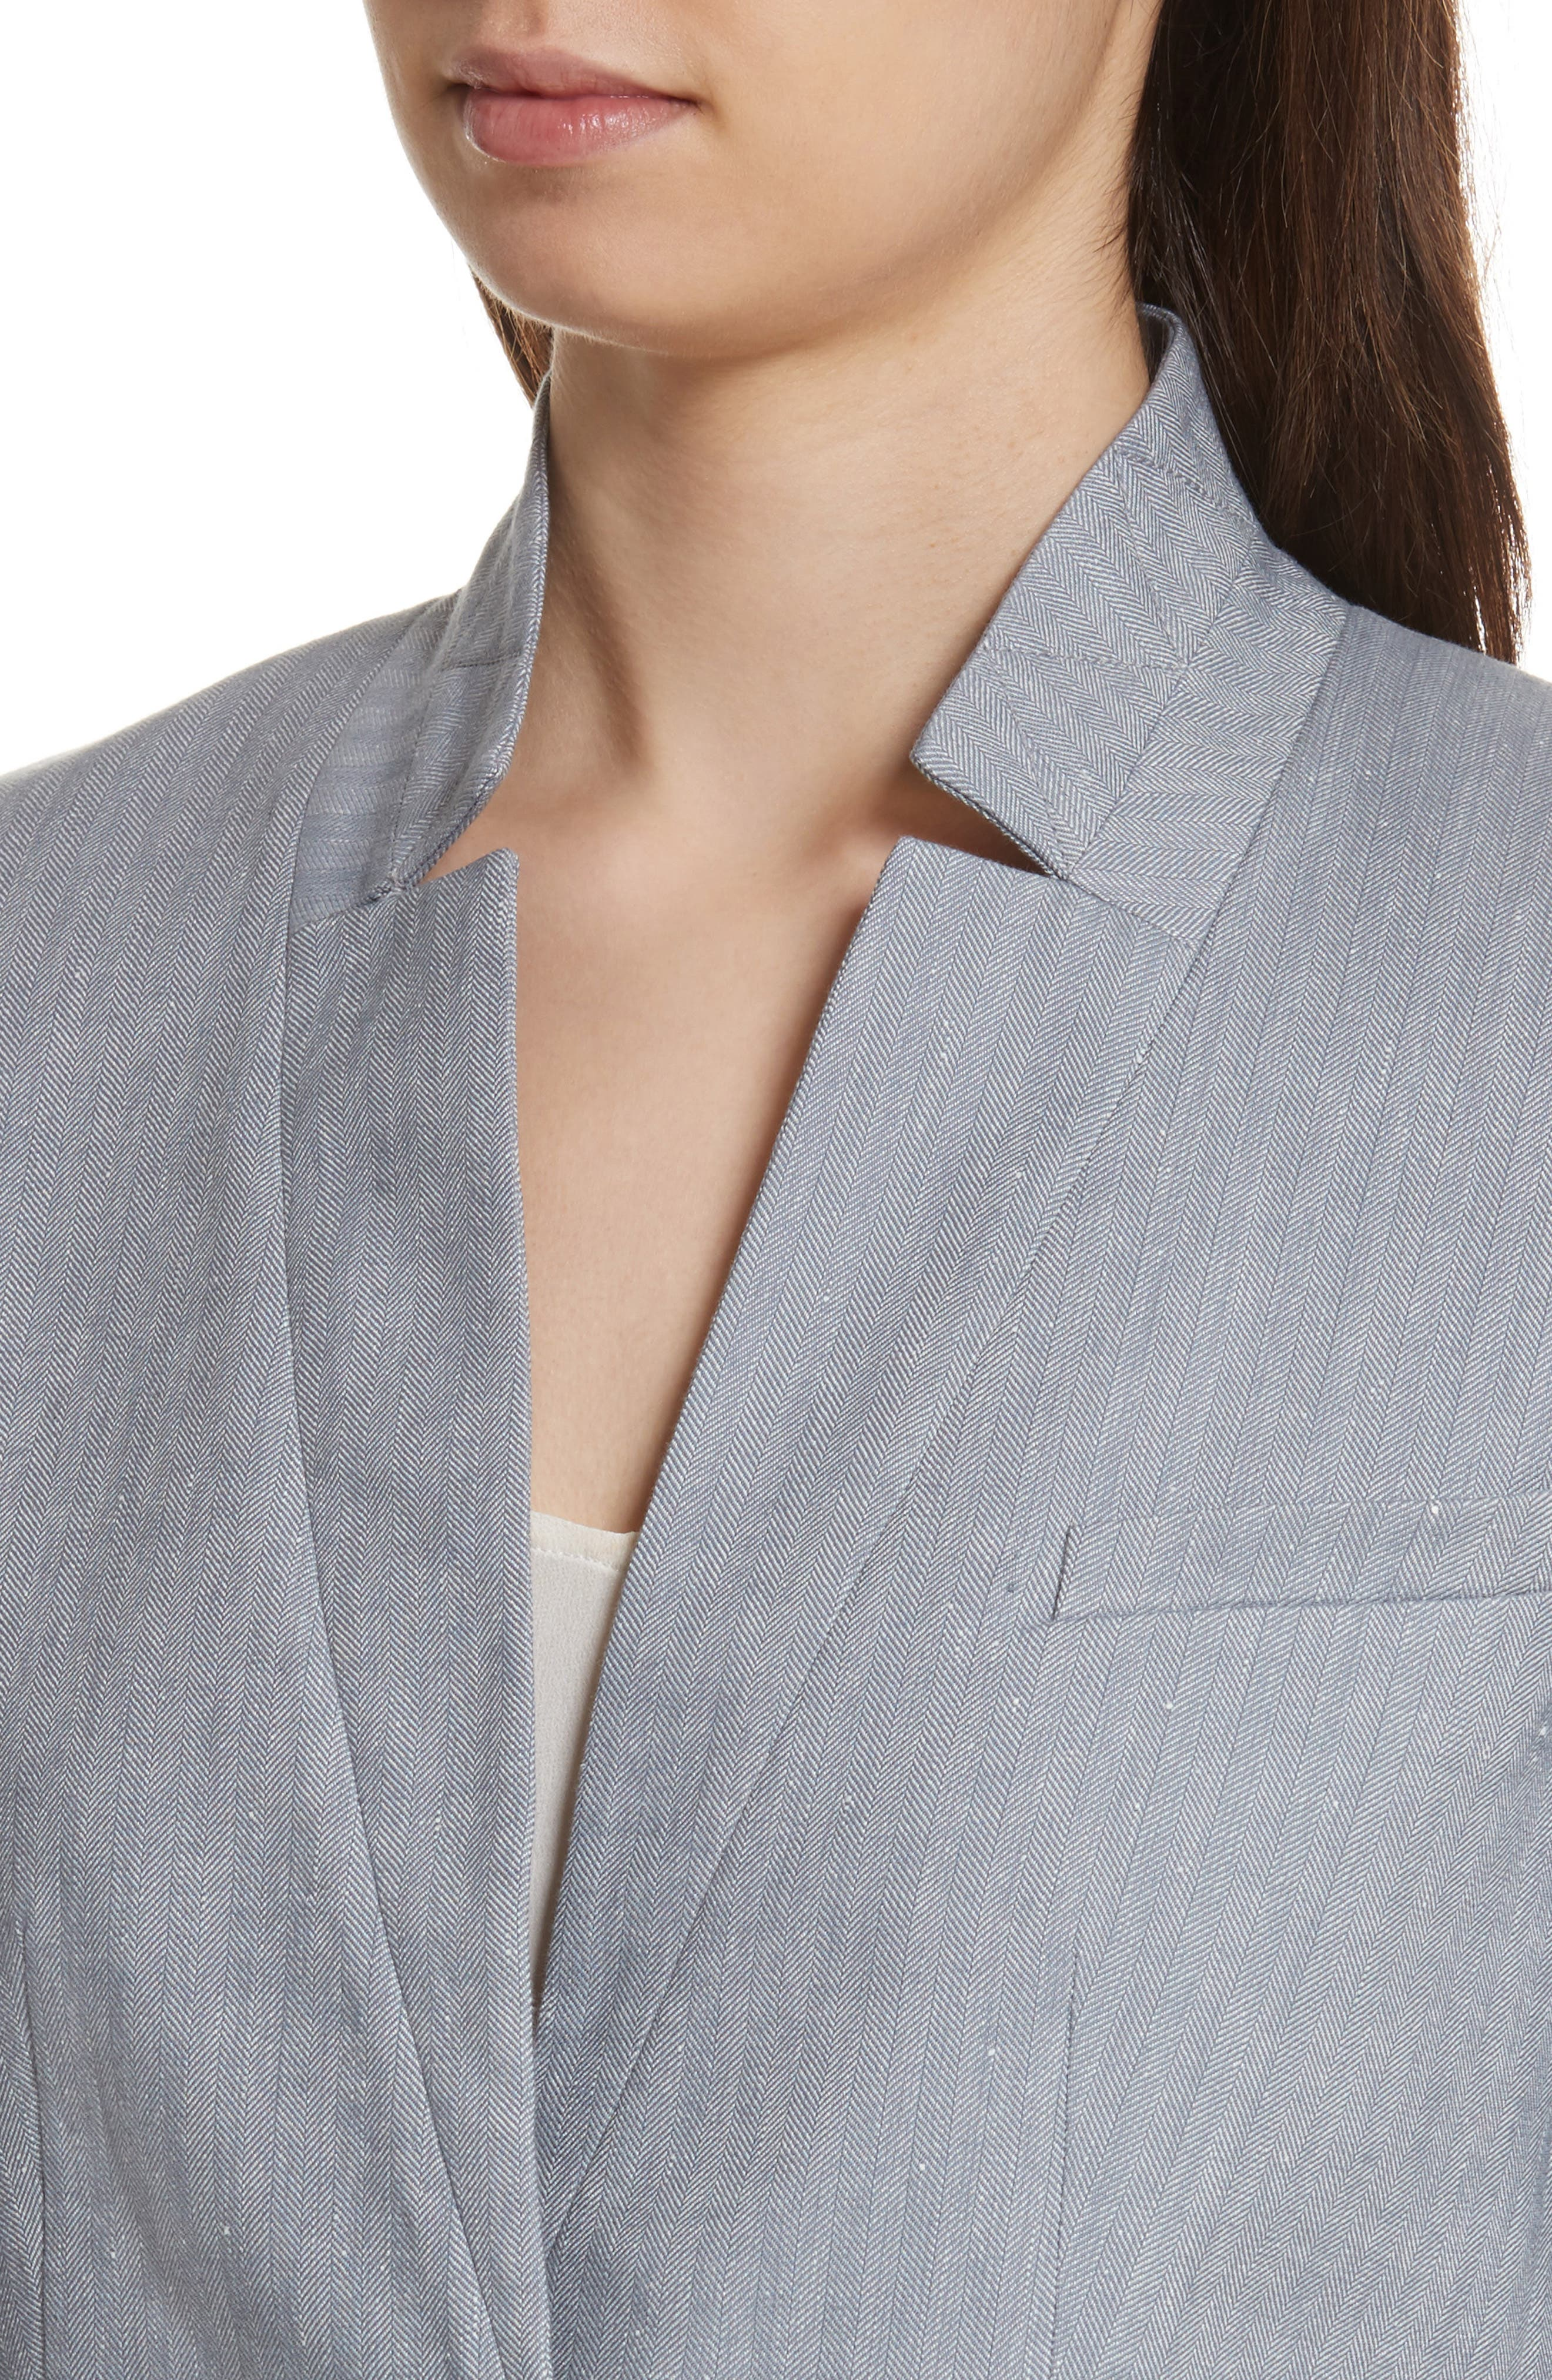 Upcollar Jacket,                             Alternate thumbnail 4, color,                             050